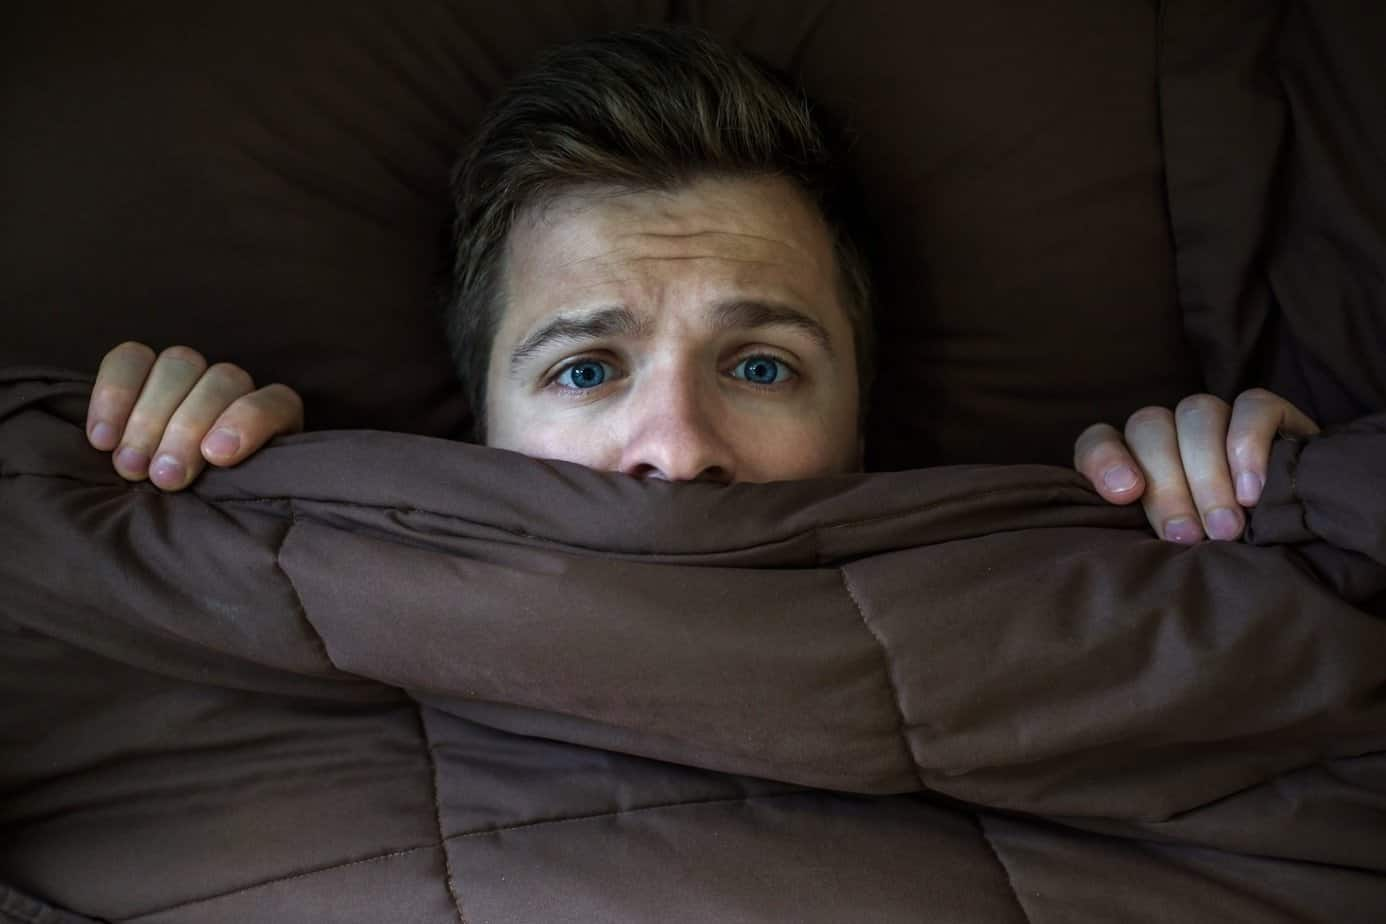 Man in bed having anxious thoughts